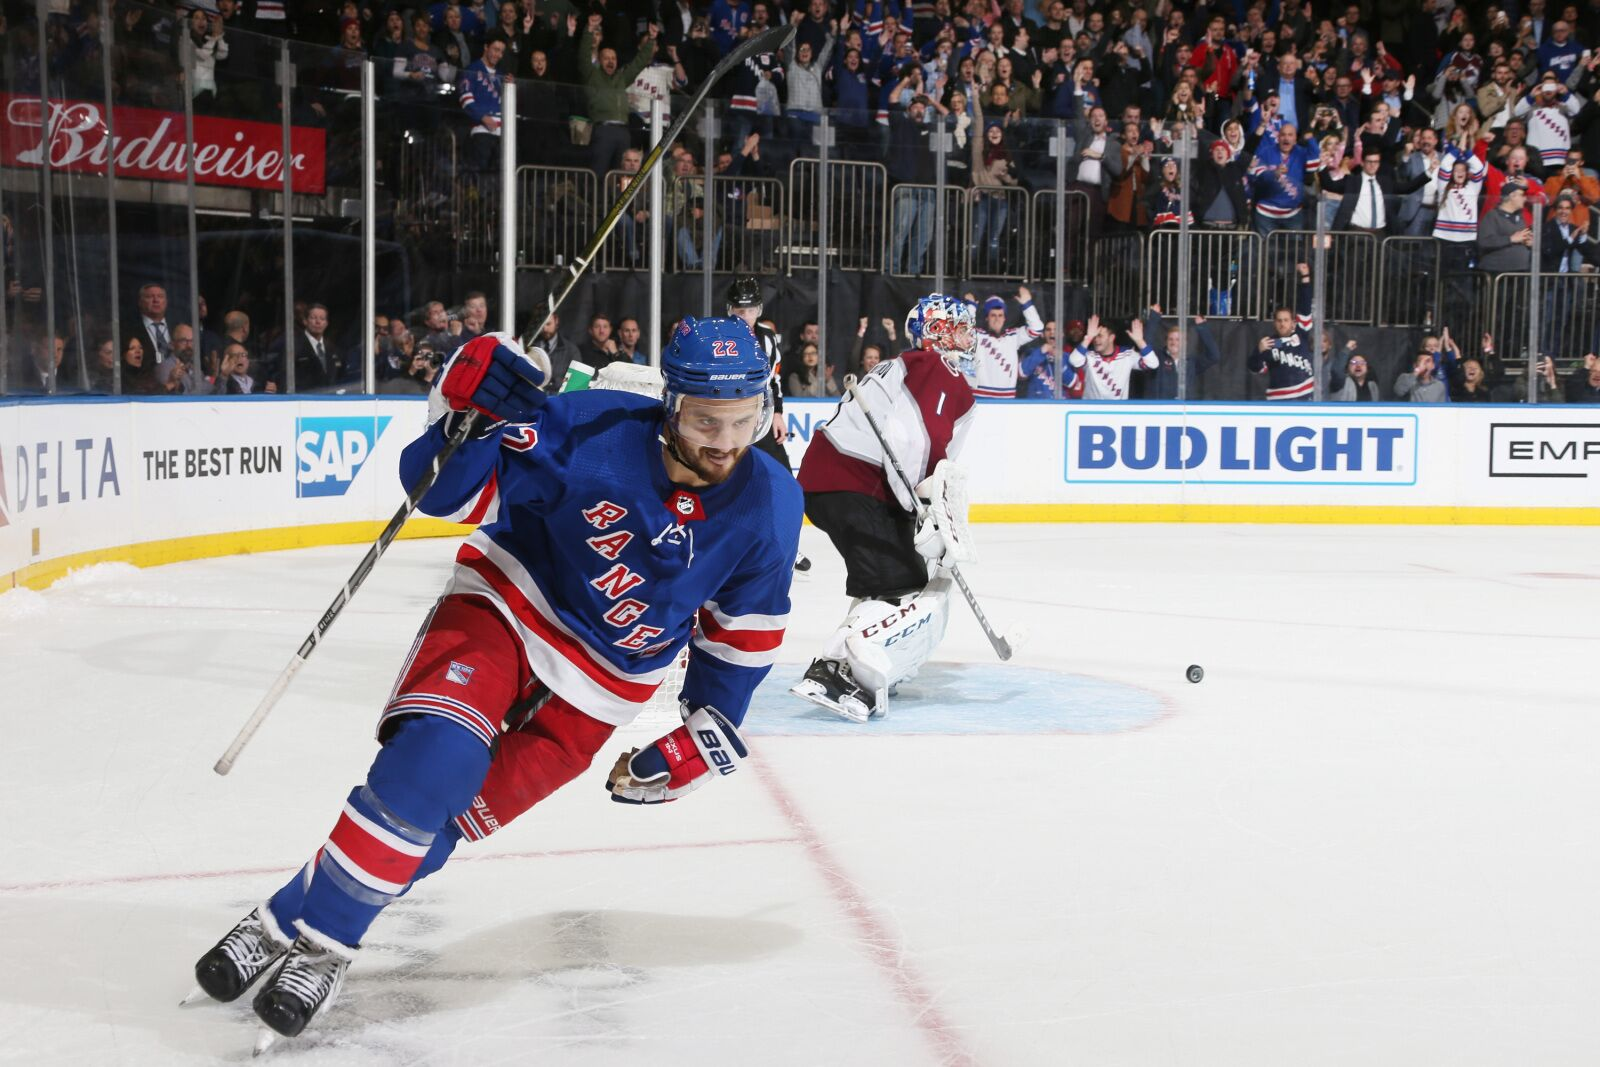 New York Rangers: Who should be in the shootout?